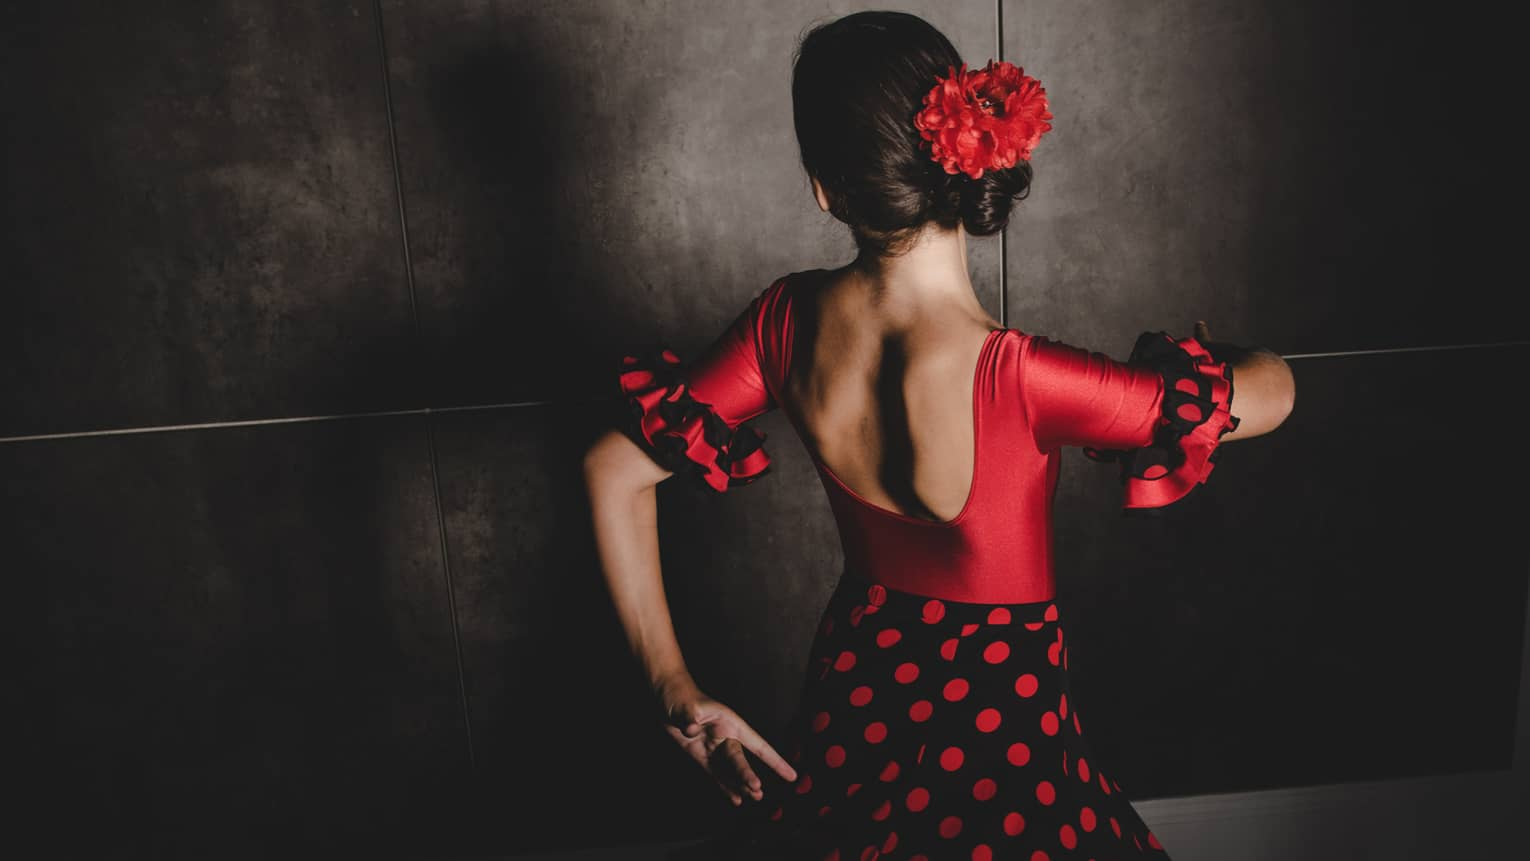 A woman wearing a black and white salsa dancing dress and red flower in her hair dances with her face turned away from the camera